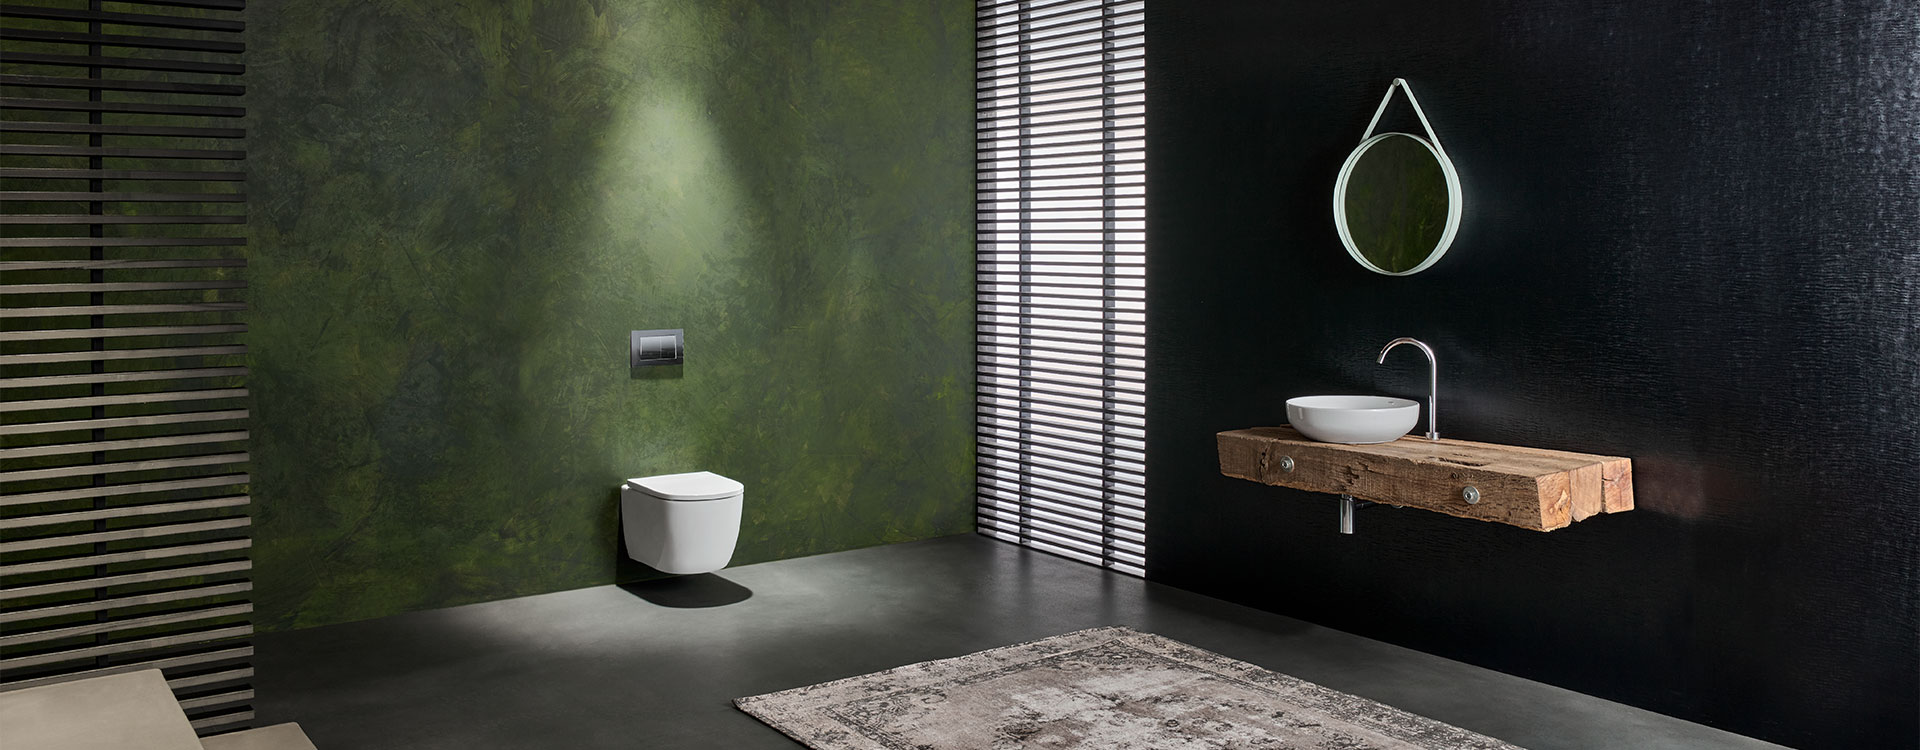 AXENT.ONE C toilet rimfree   Features